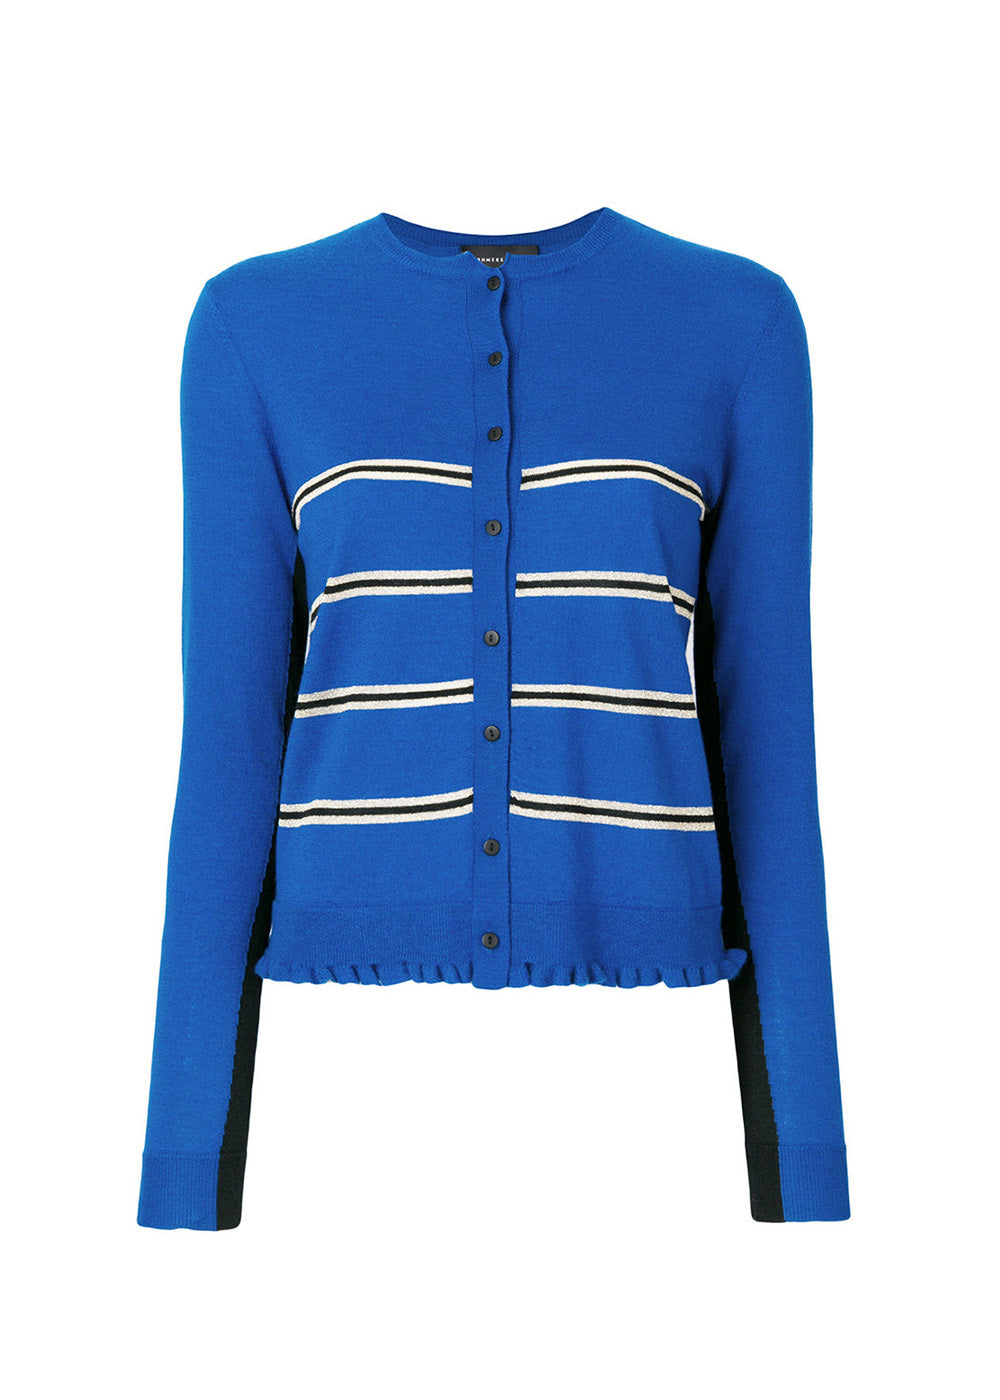 ee8e349060 KLEIN BLUE SUPER FINE CROPPED CASHMERE CARDIGAN WITH LUREX STRIPES ...